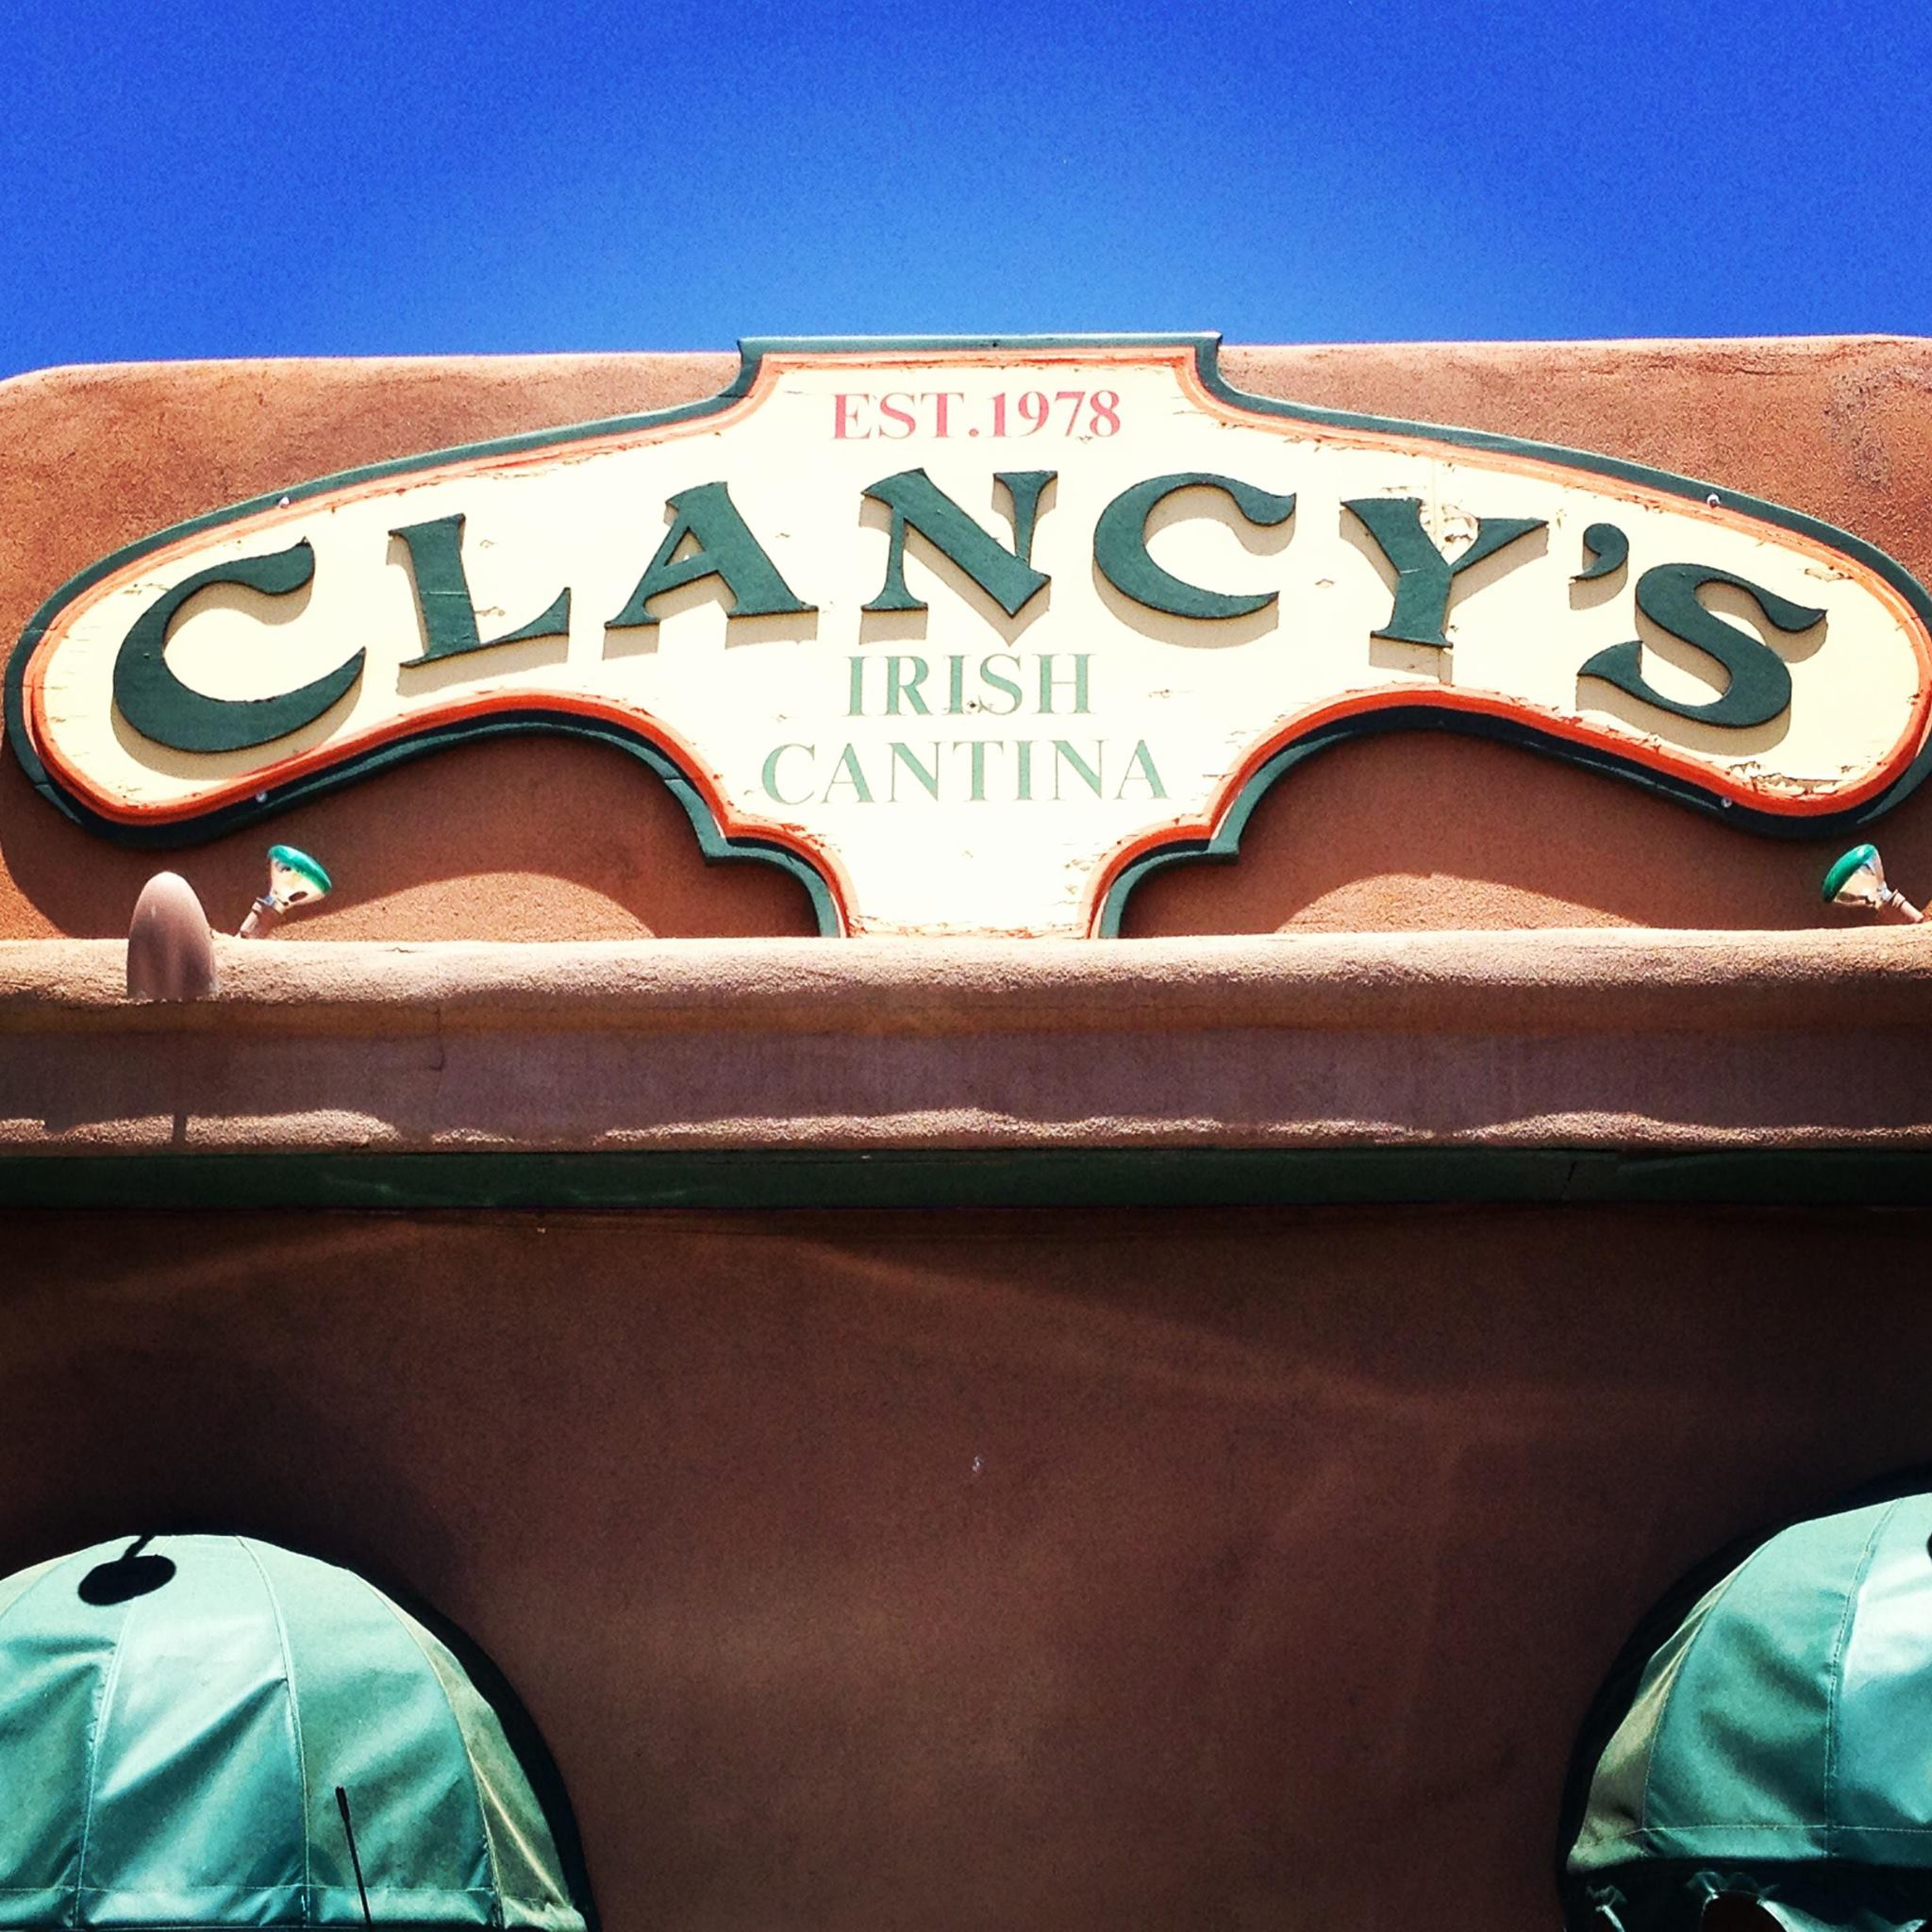 Clancy's Puba an Irish Cantina